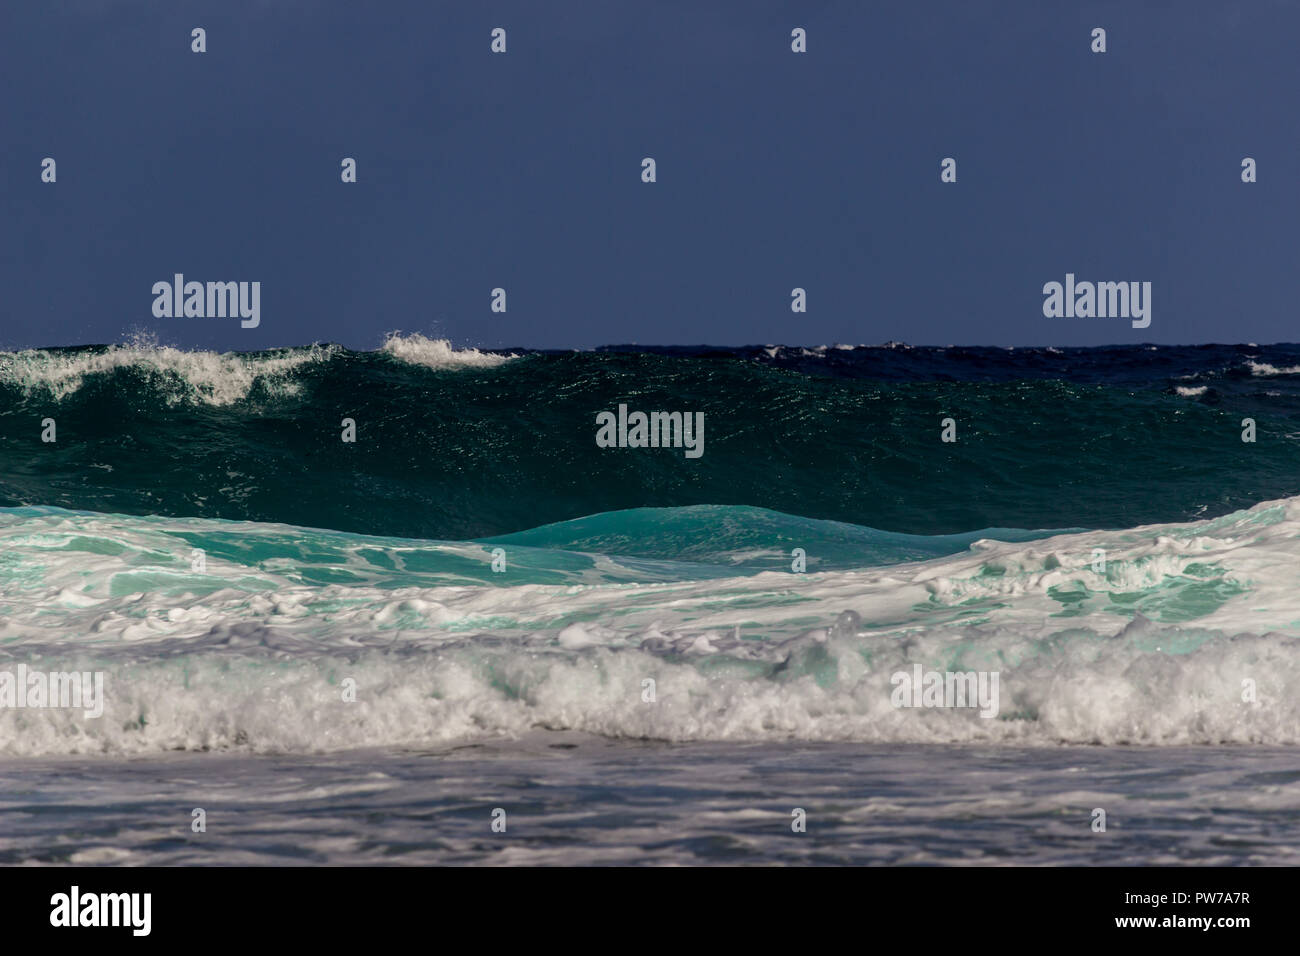 Crashing waves in tropical turquoise water. - Stock Image